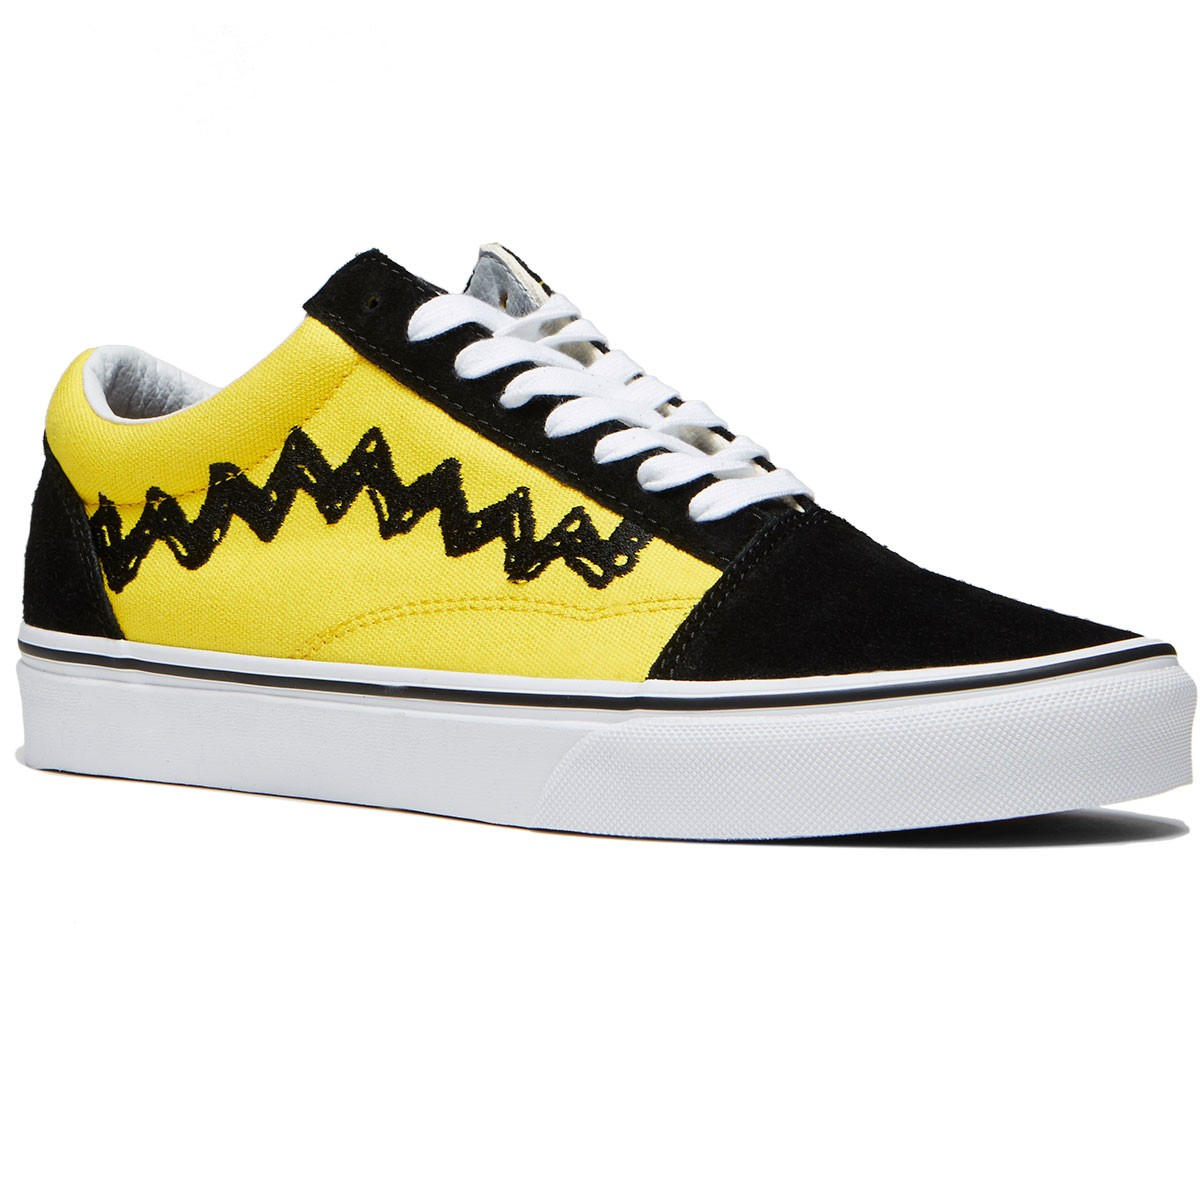 Vans X Peanuts Old Skool Shoes - Charlie Brown Black - 8.0 885c1d9a8